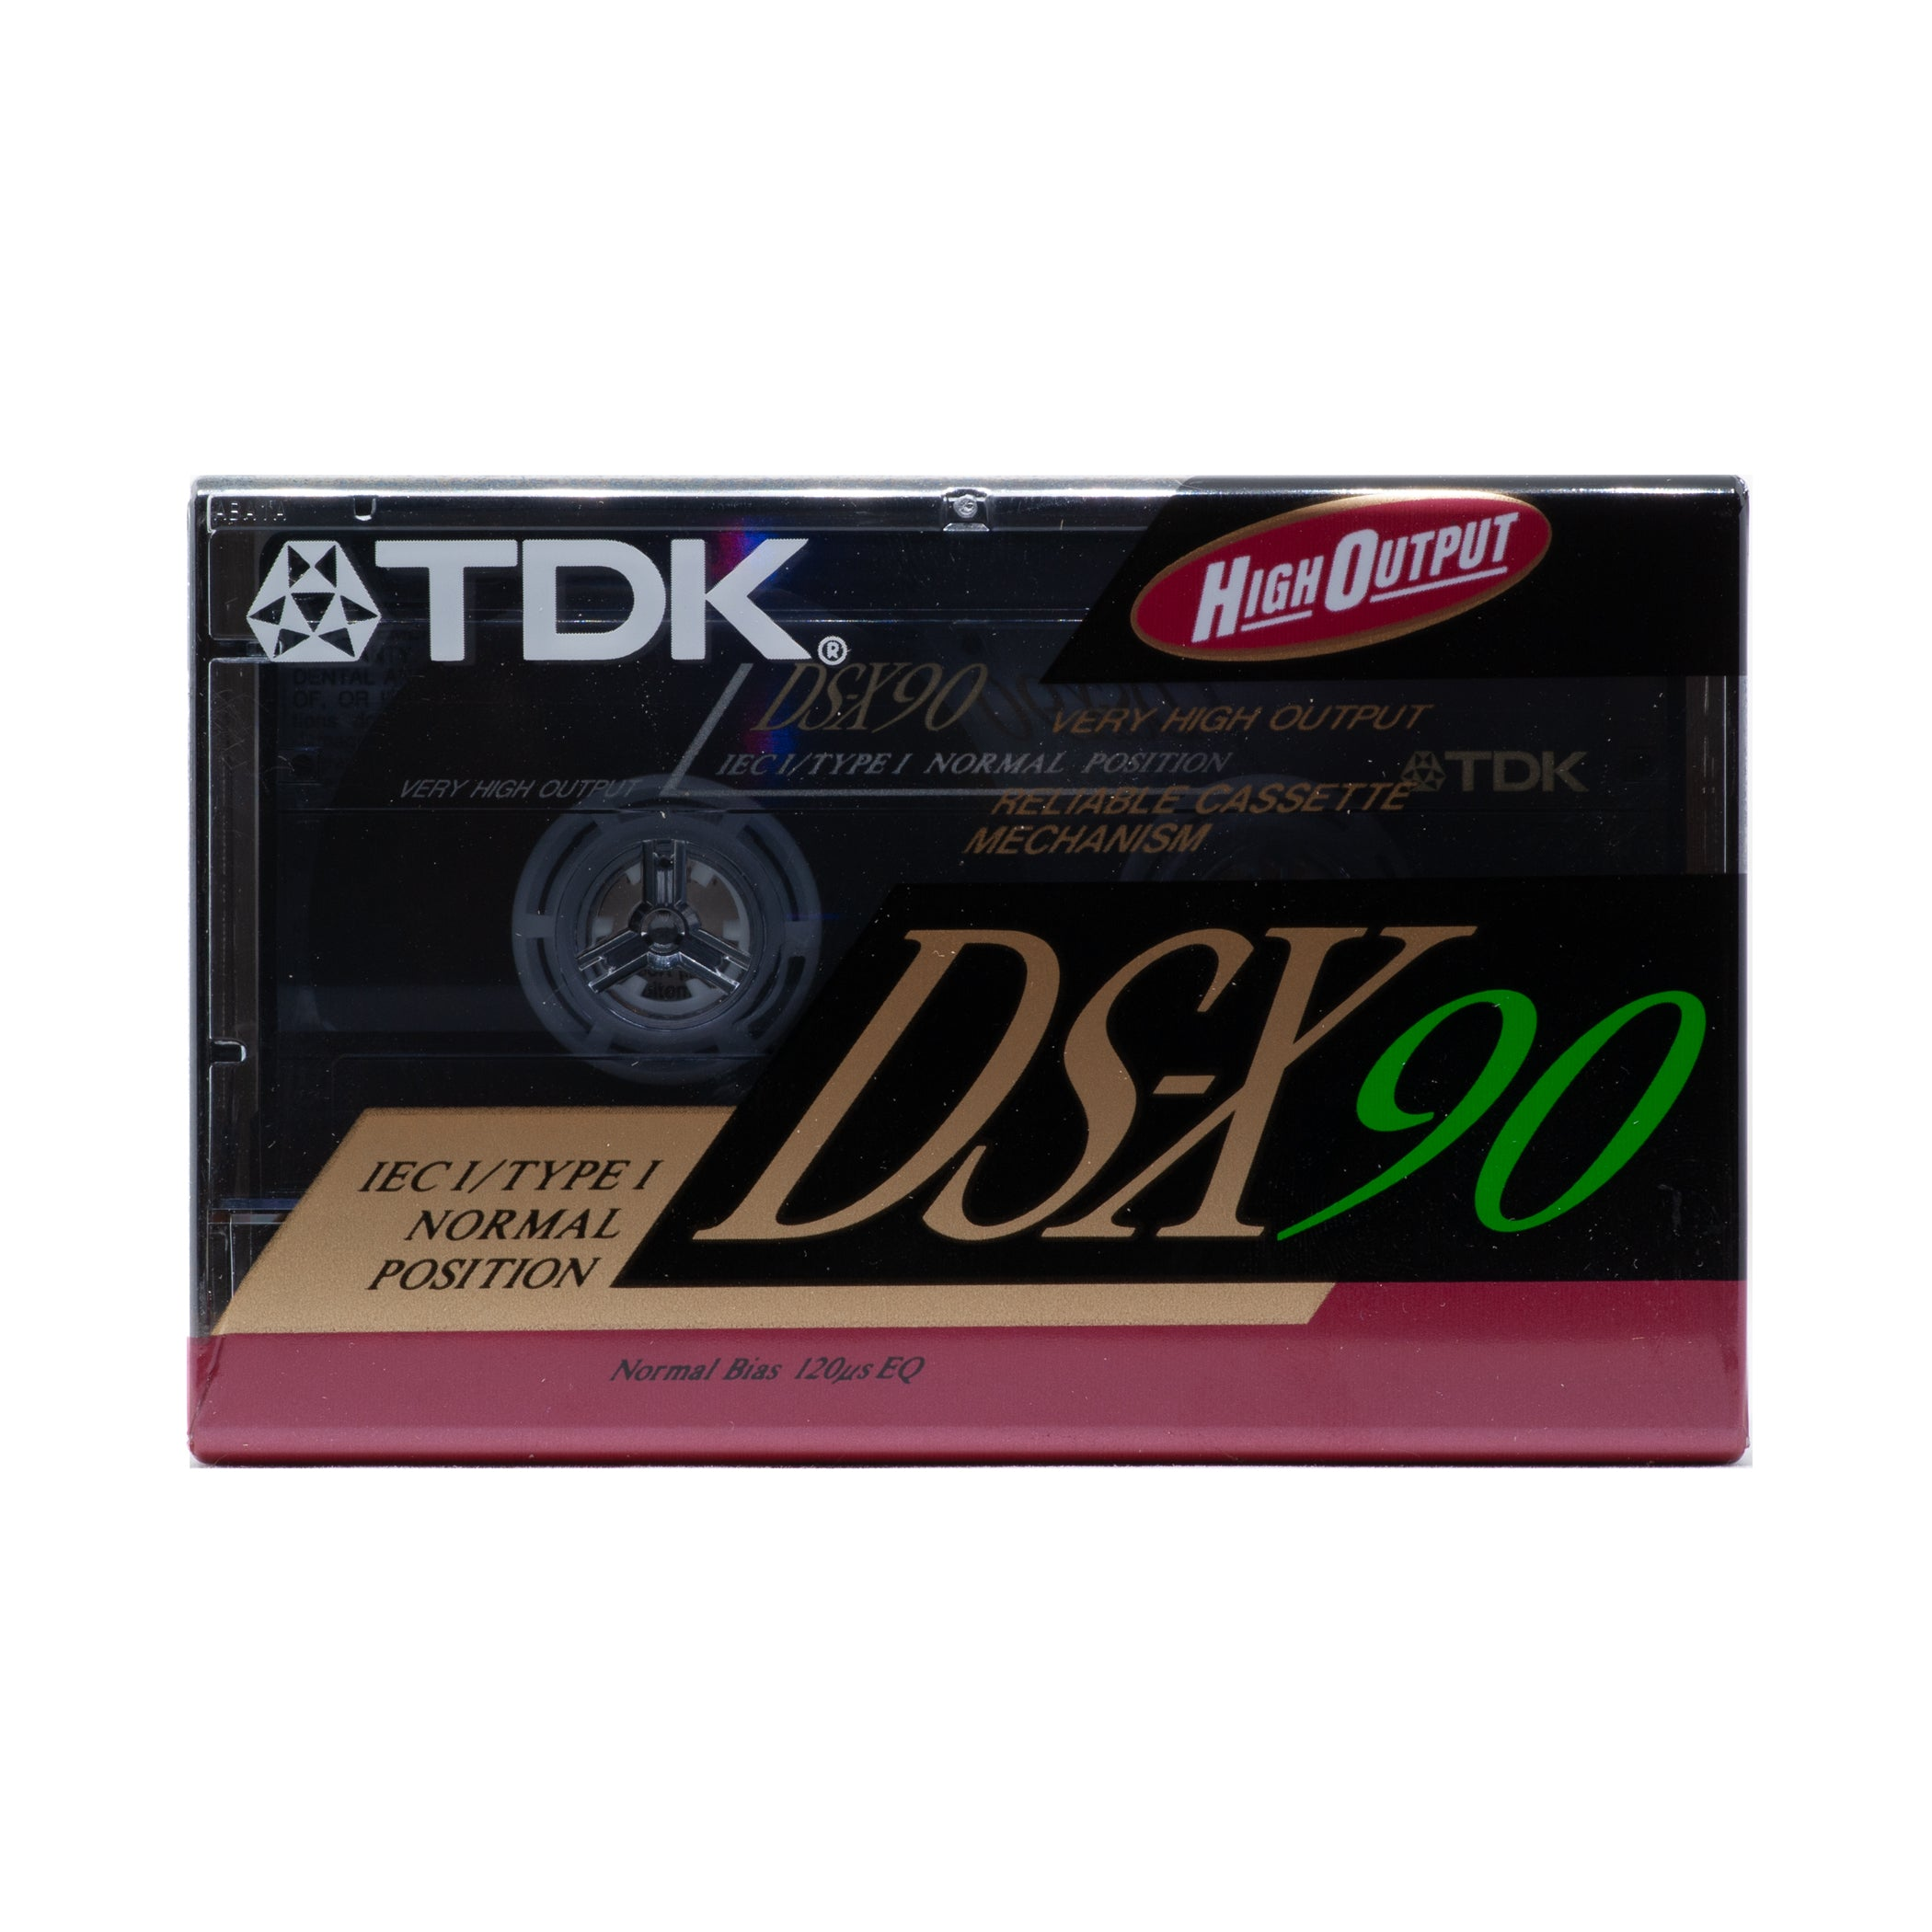 1991 TDK DS-X 90 Type I Cassette Tape